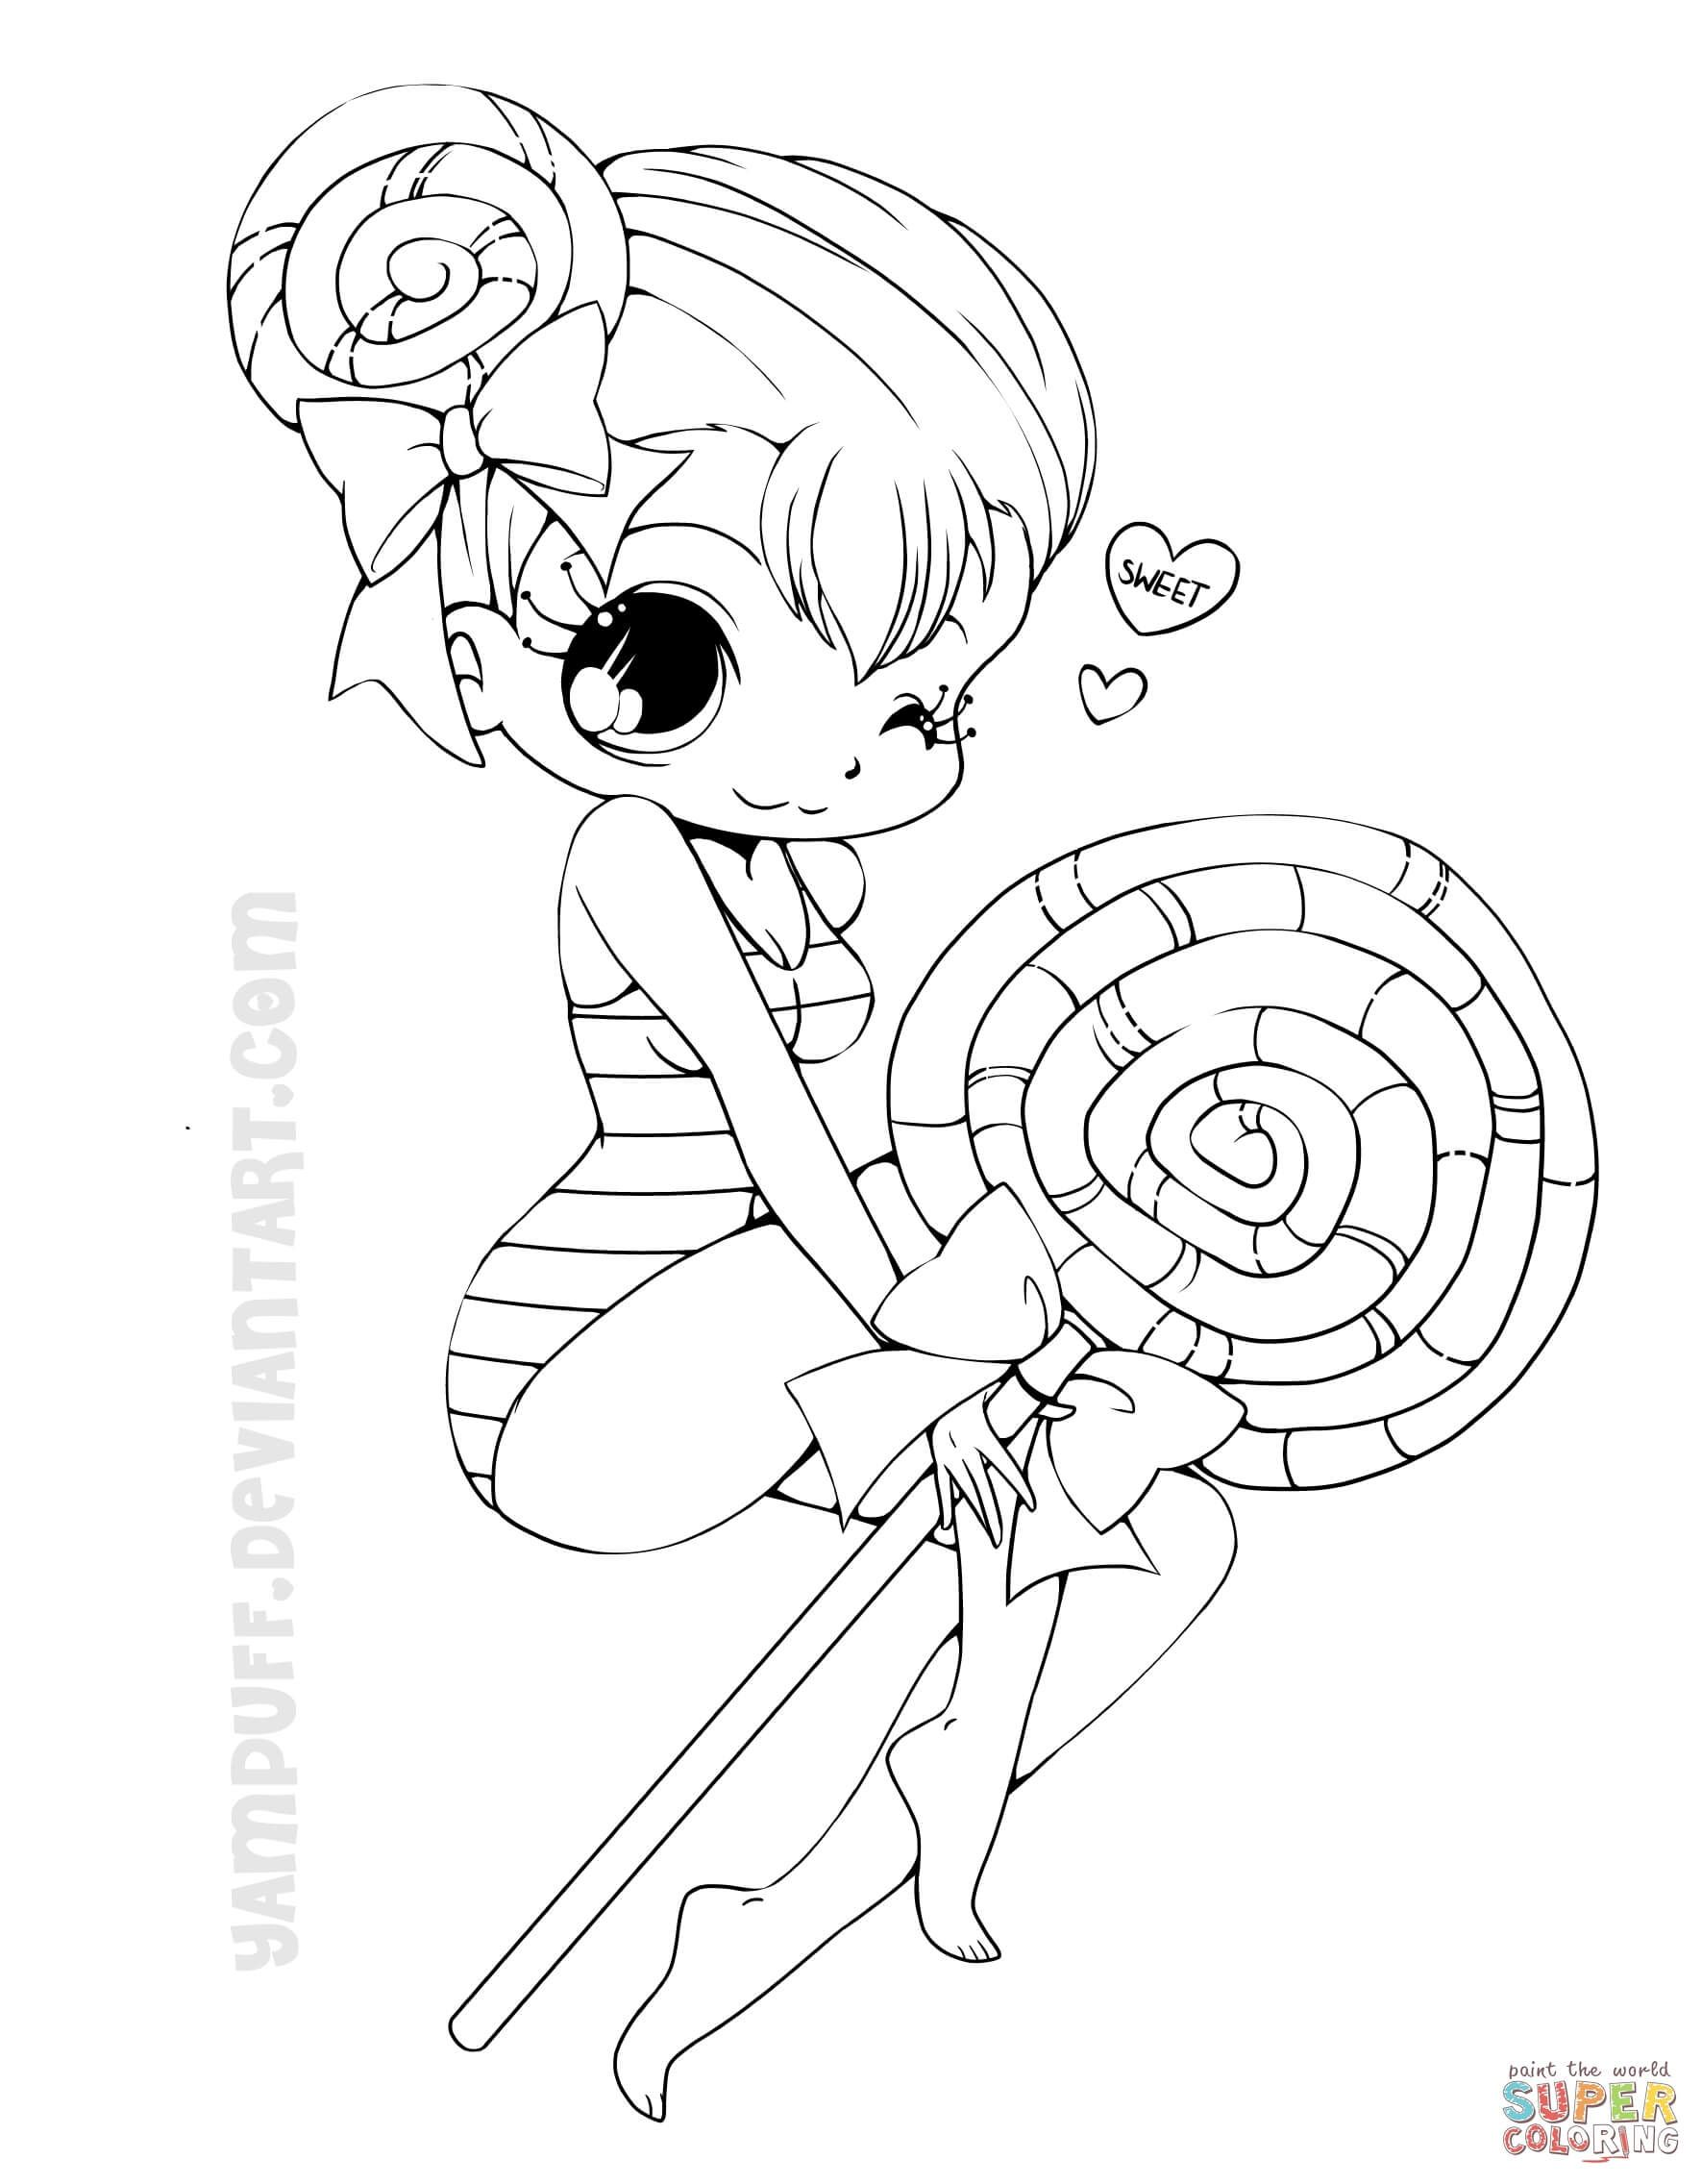 cute girl coloring pages Chibi Lollipop Girl Coloring Page Free Printable Pages Within Cute  cute girl coloring pages